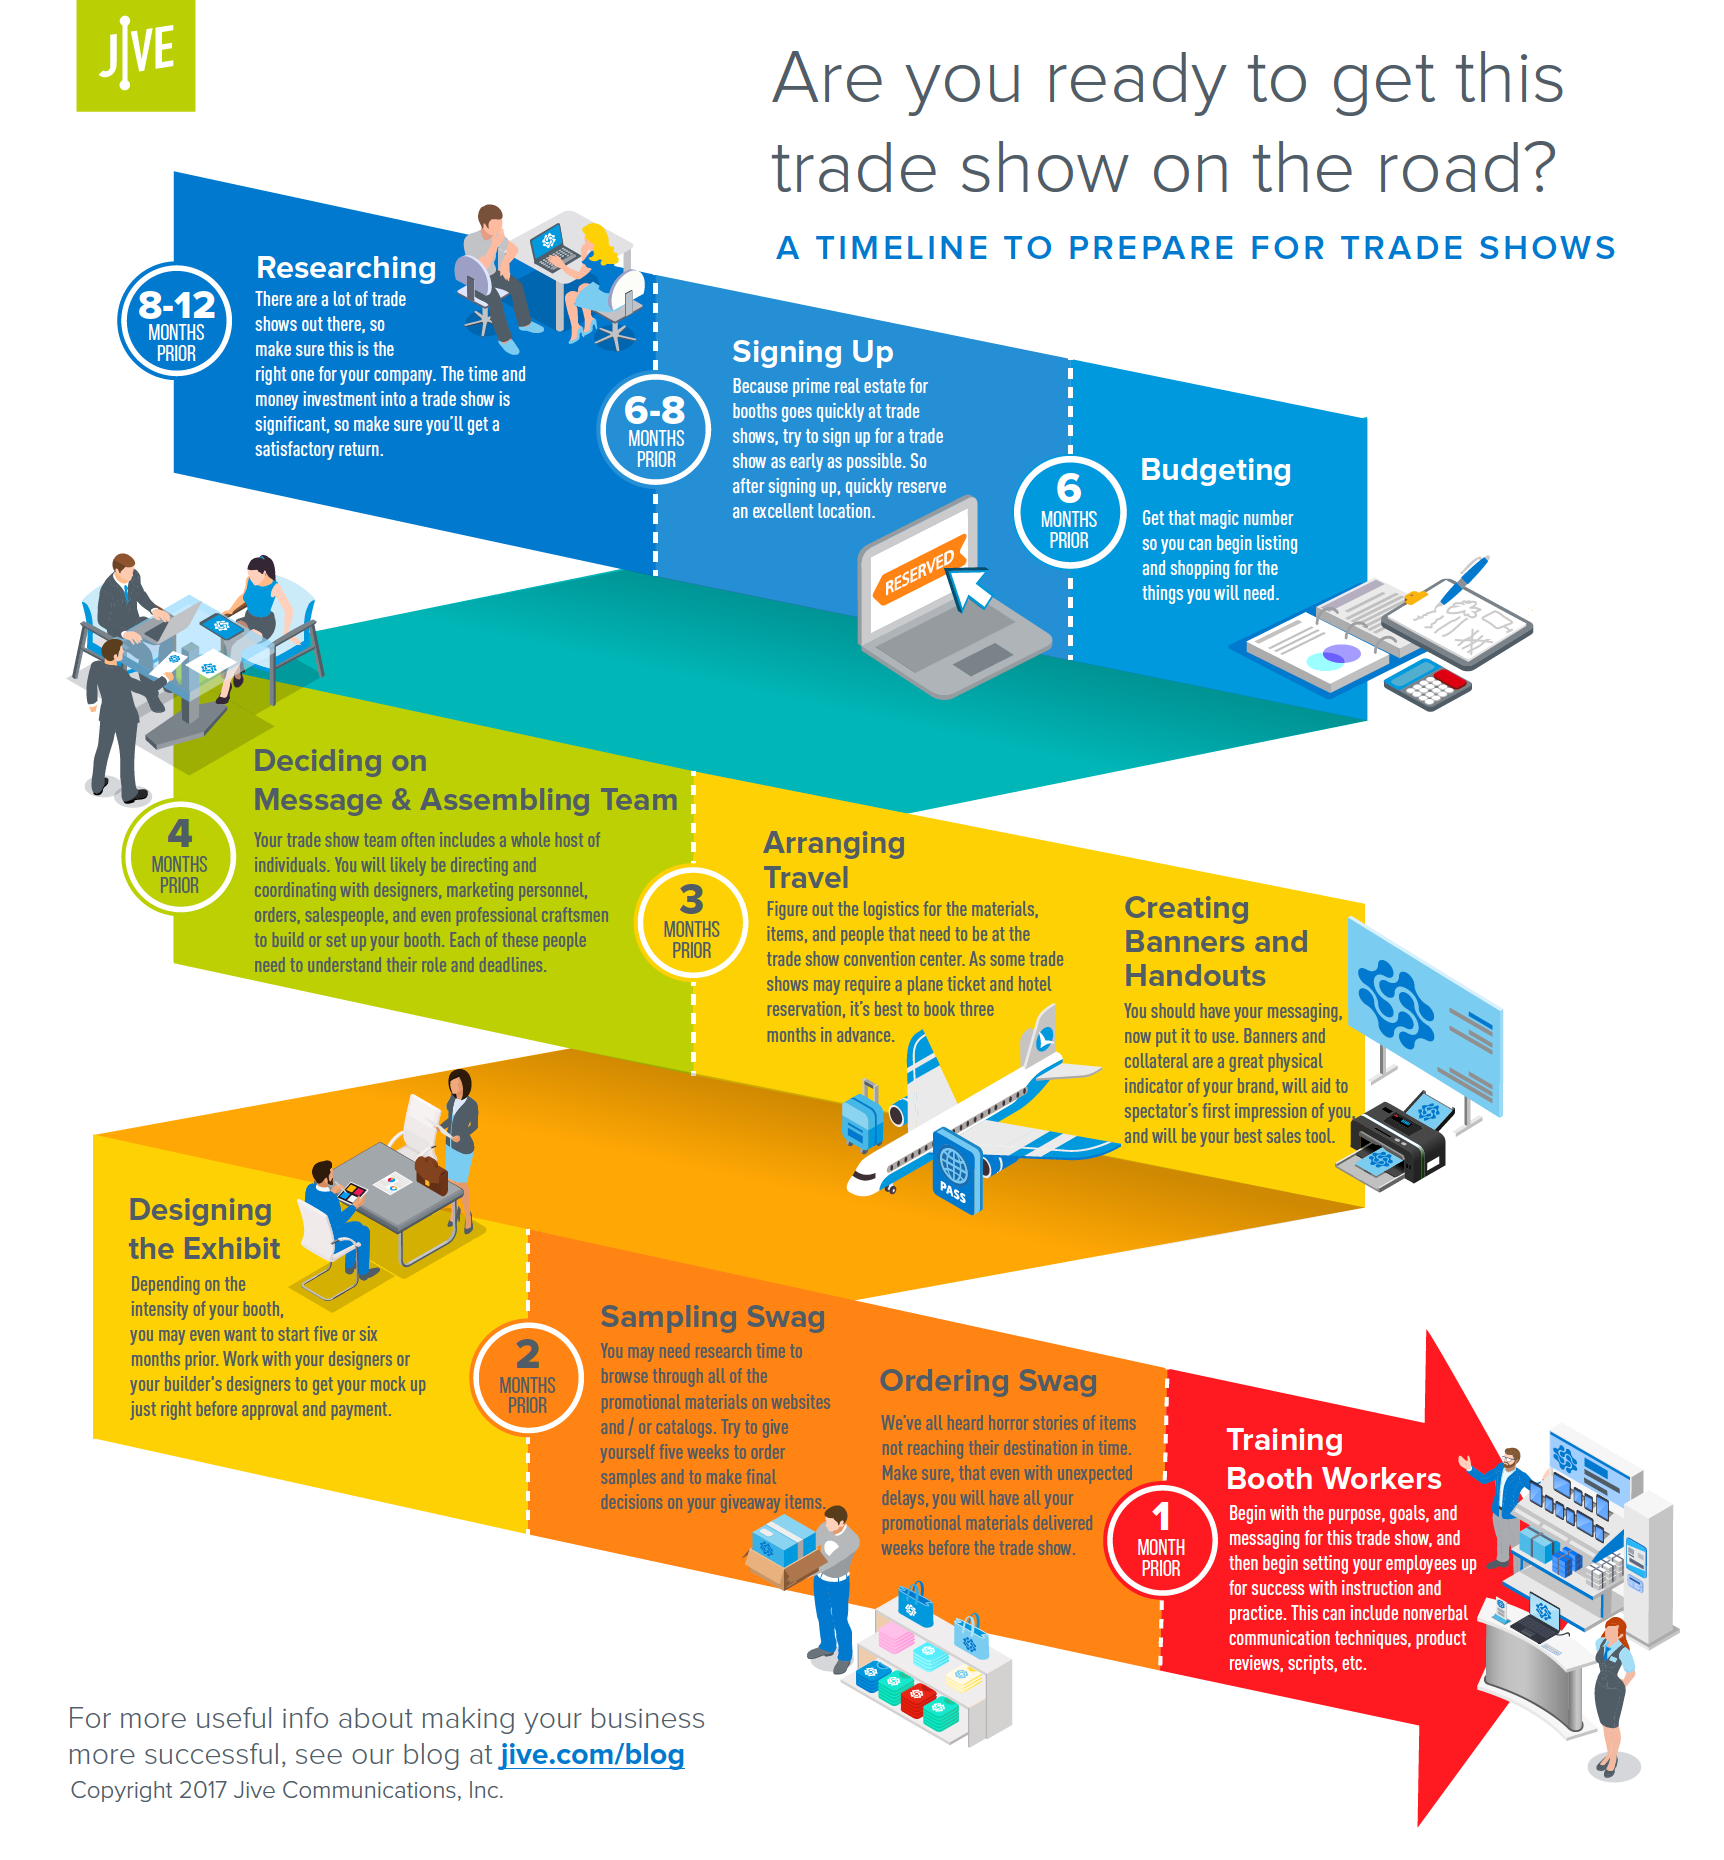 Tradeshow Timeline Infographic:Are You Ready to Get This Trade Show On the Road